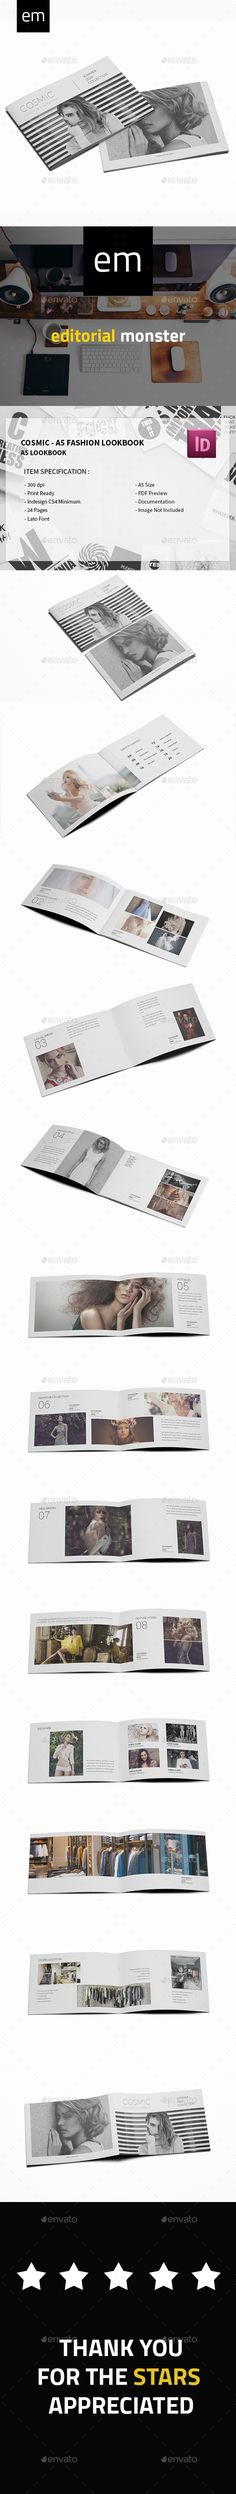 Cosmic - A5 Fashion Lookbook - Catalogs #Brochures Download here:  https://graphicriver.net/item/cosmic-a5-fashion-lookbook/20344018?ref=alena994